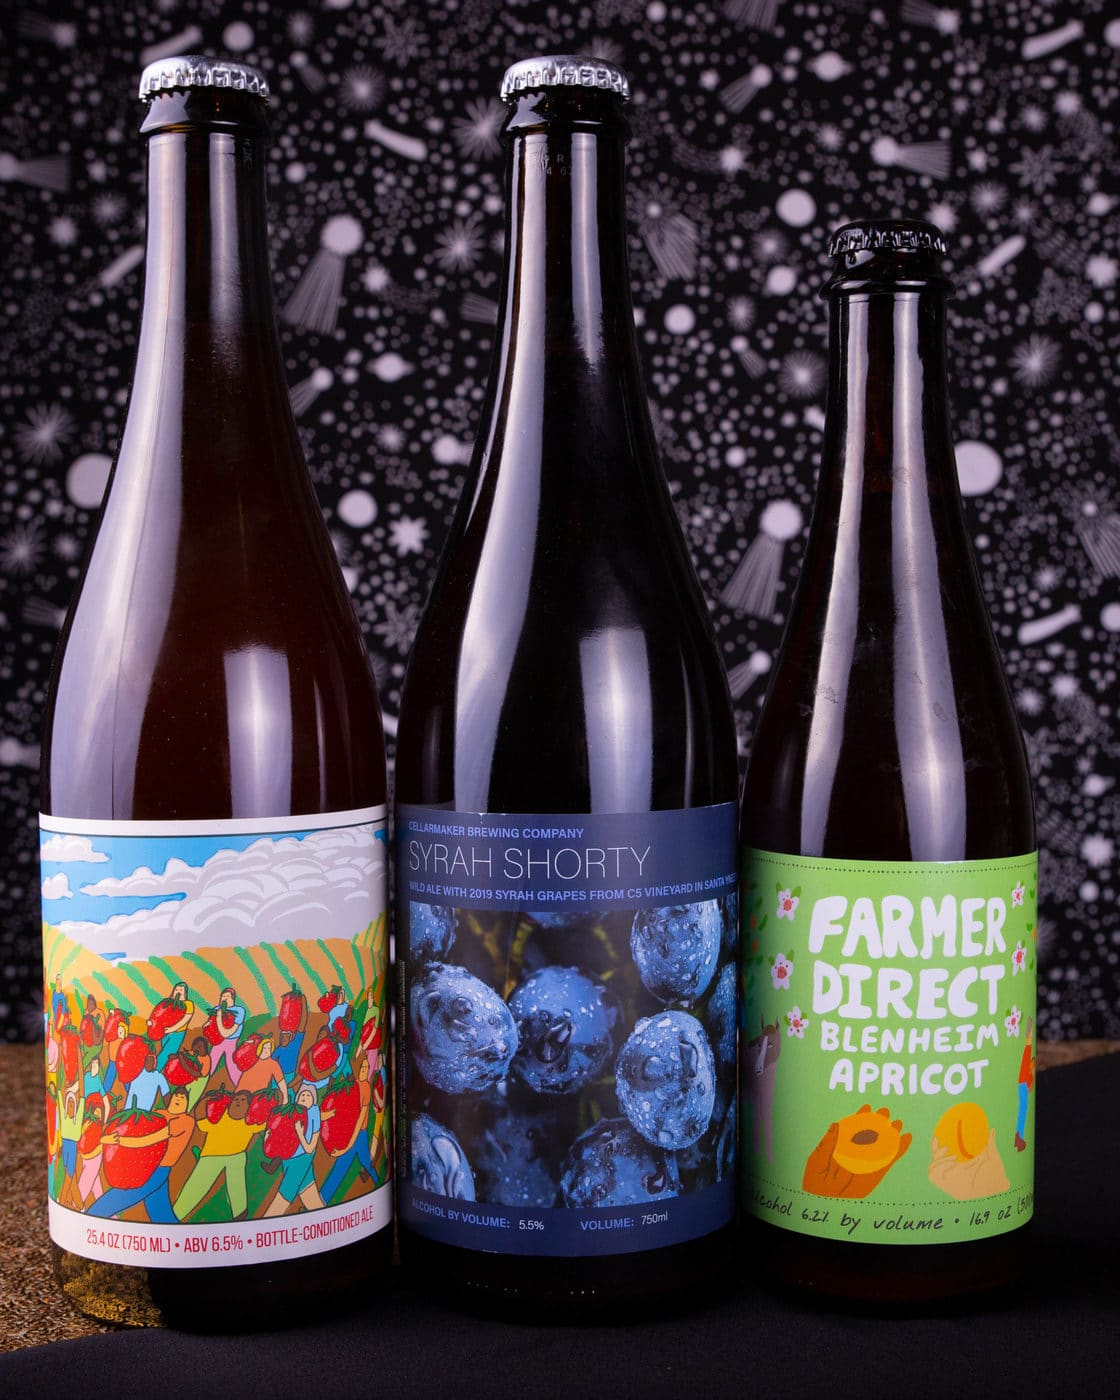 Fruity Dranks ~ 3 Bottle Case ~ Strawberry Oblivion, Syrah Shorty & Farmer Direct: Blenheim Apricot ~ Shipping Out Wednesday 12/2 For Next Day Delivery*